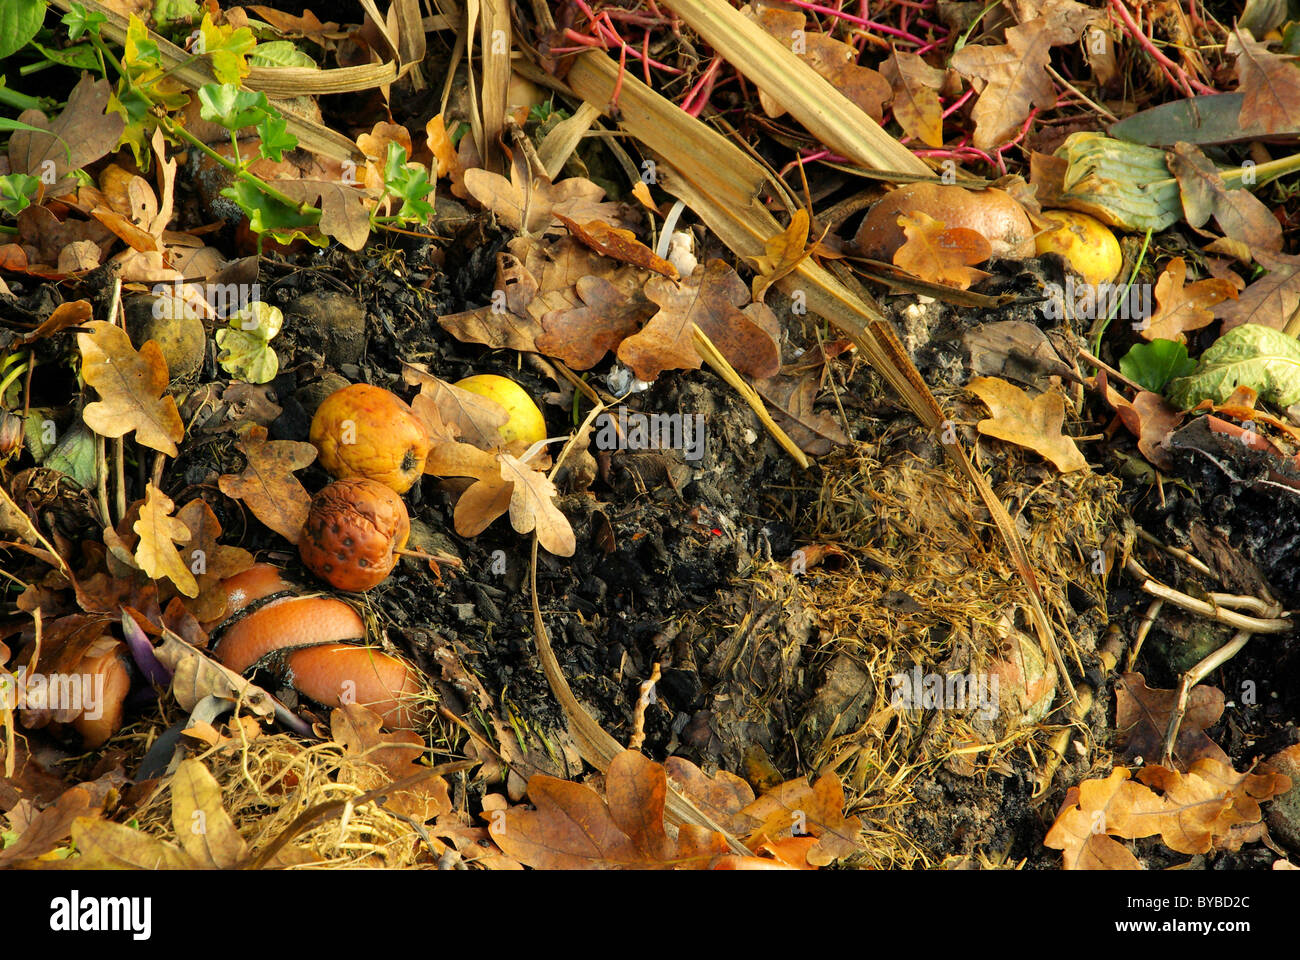 Komposthaufen - compost pile 11 - Stock Image